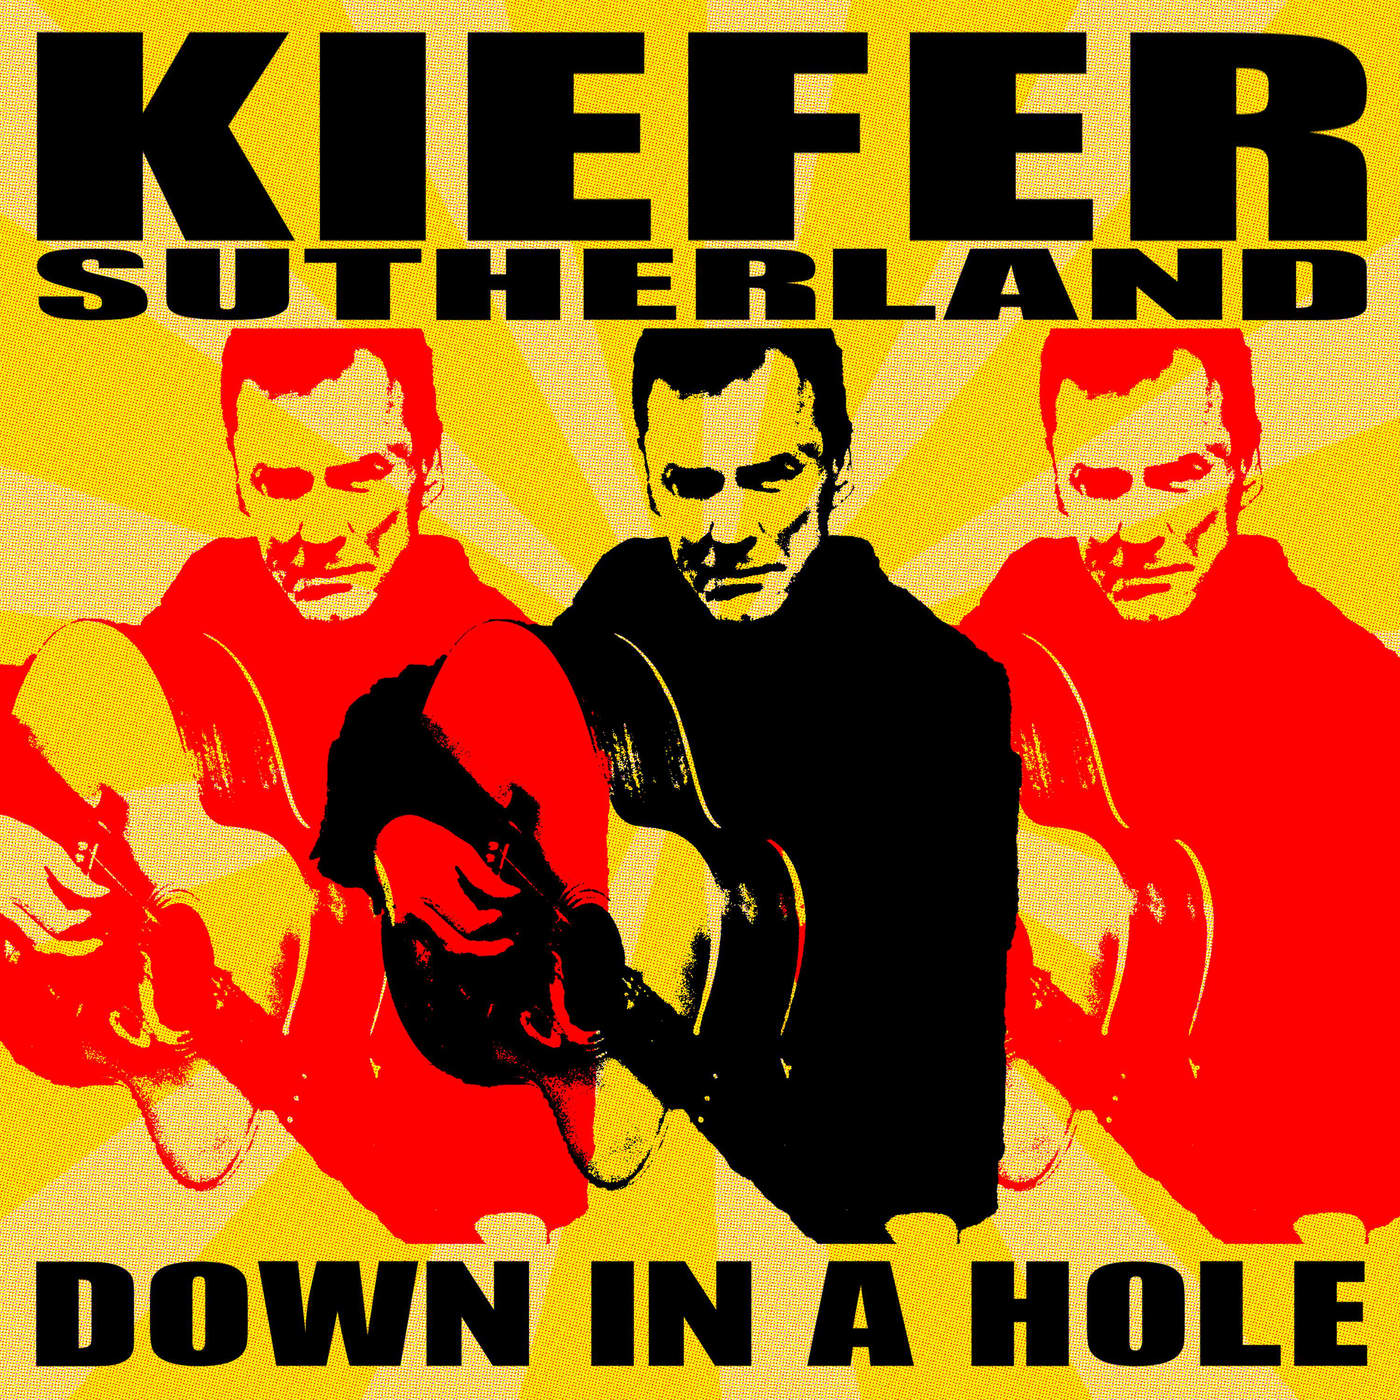 Kiefer Sutherland - Down in a Hole Cover